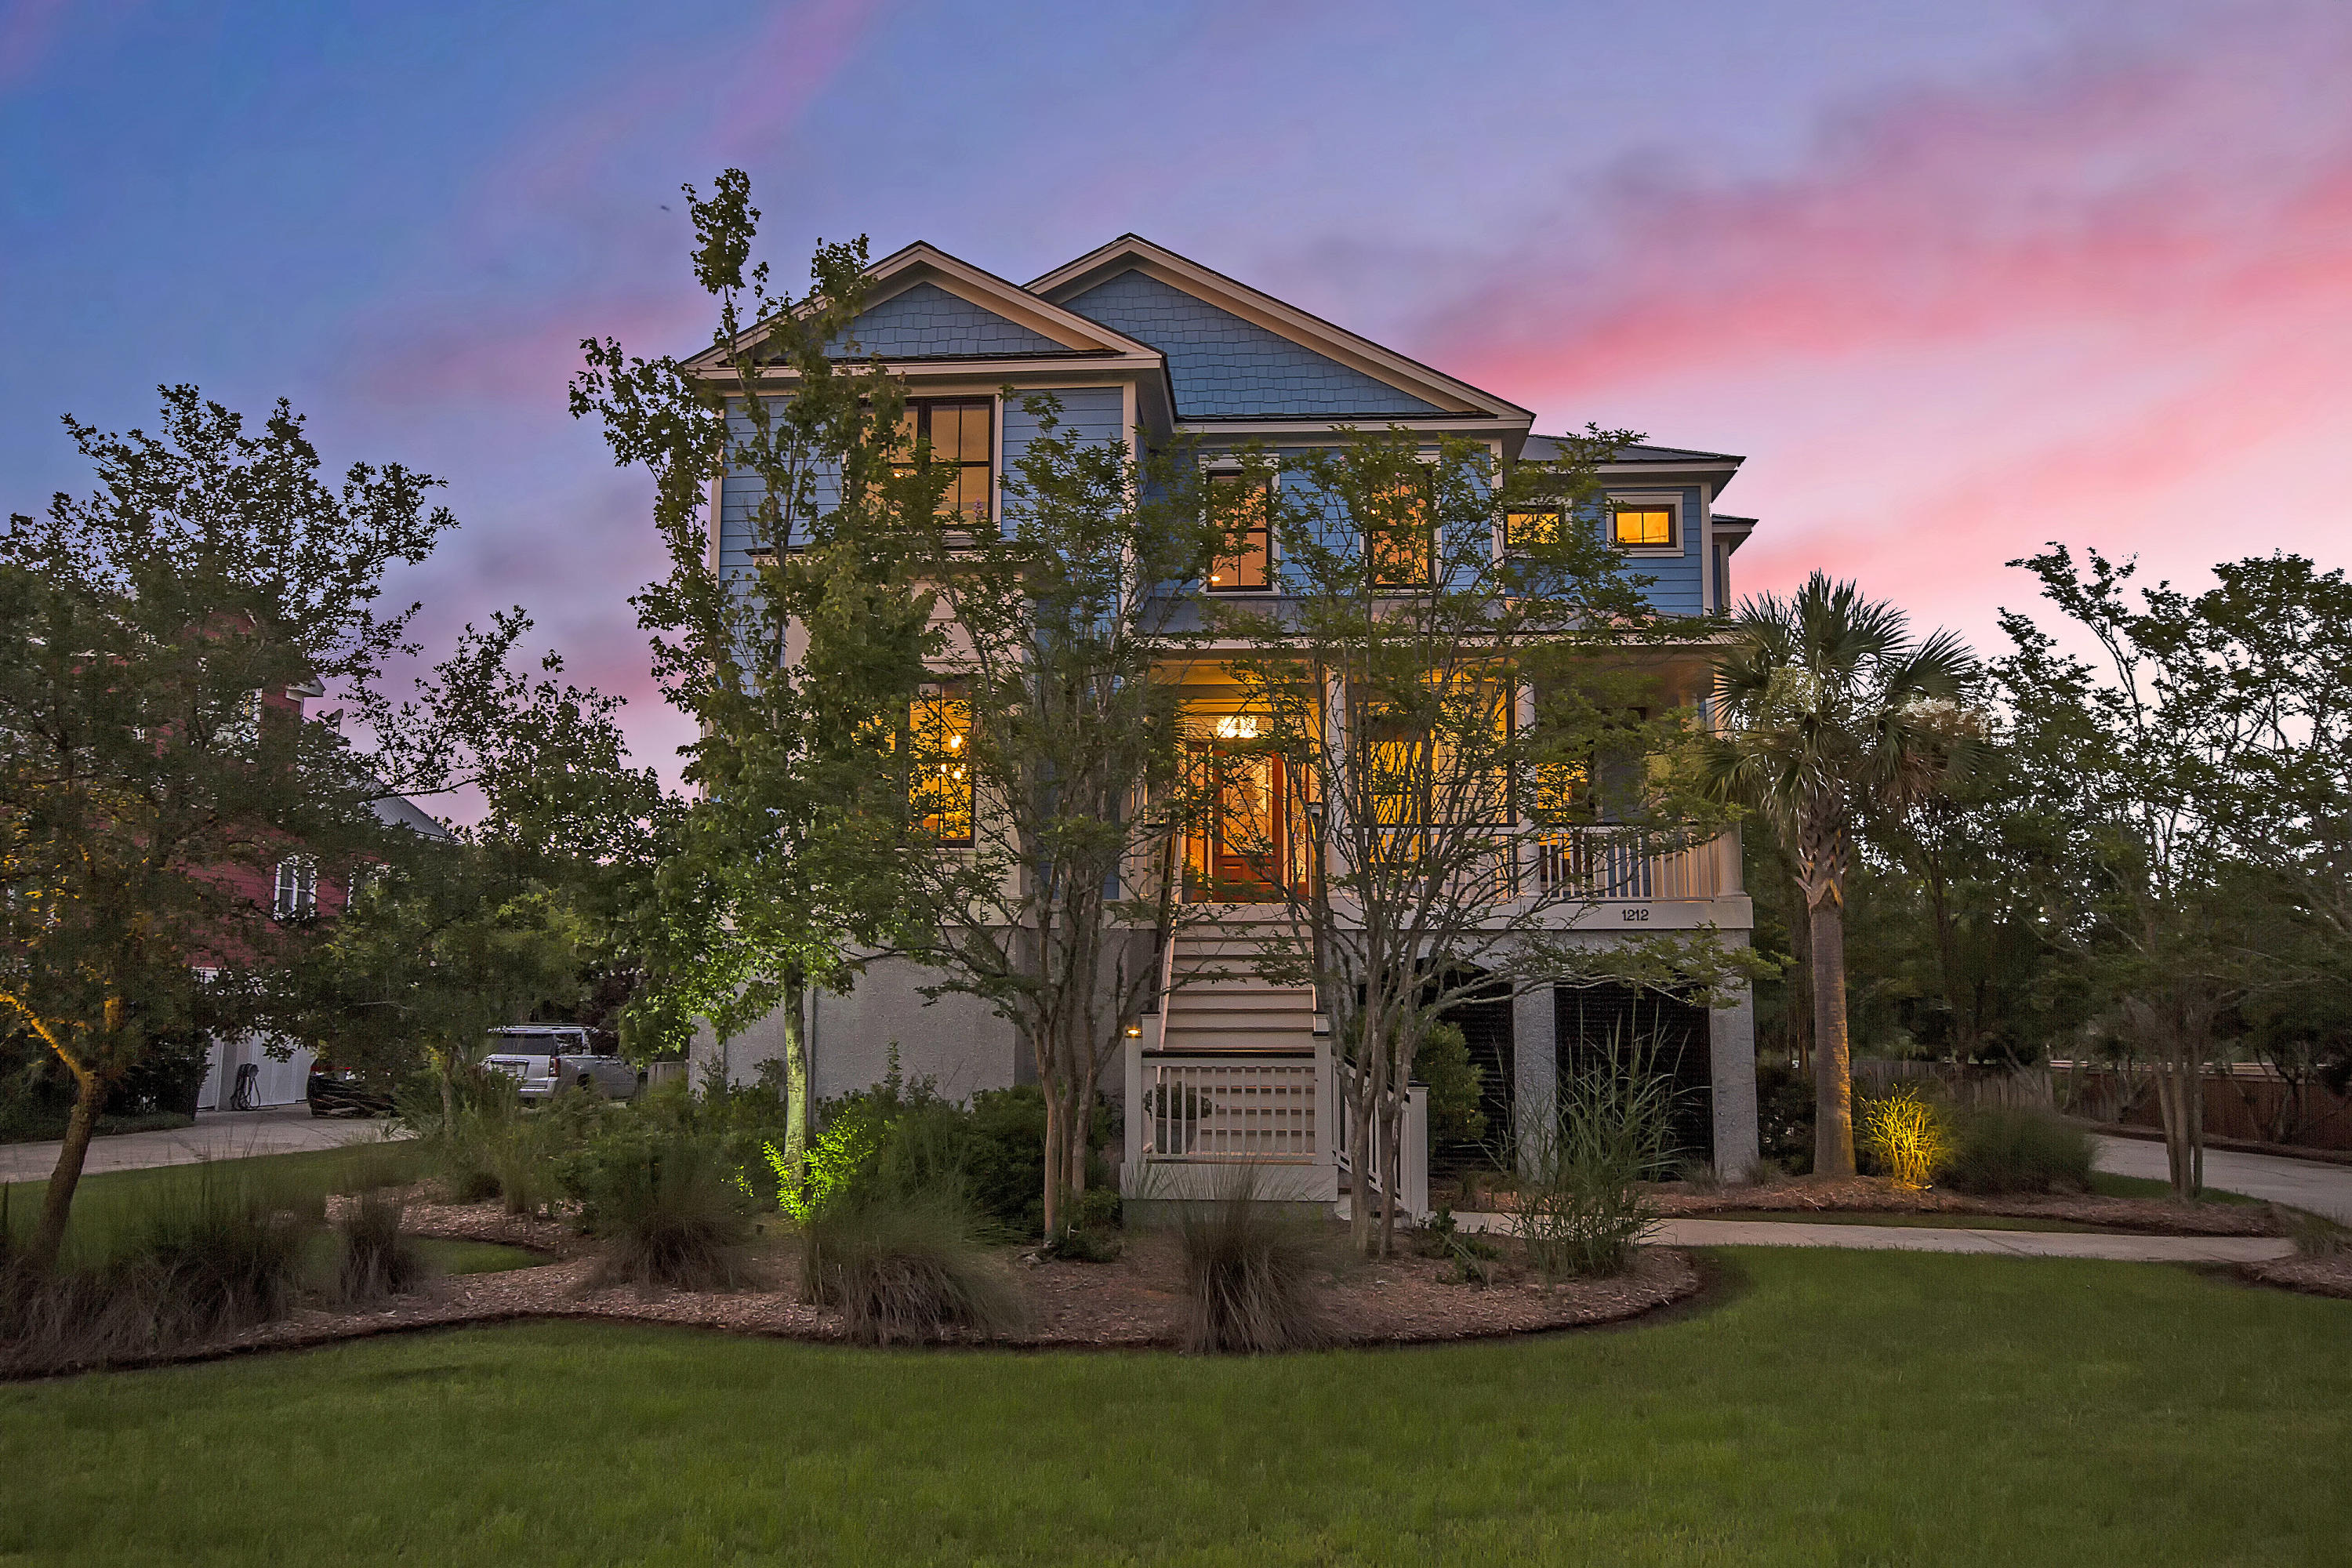 Beresford Creek Landing Homes For Sale - 1212 Winding Creek, Charleston, SC - 76